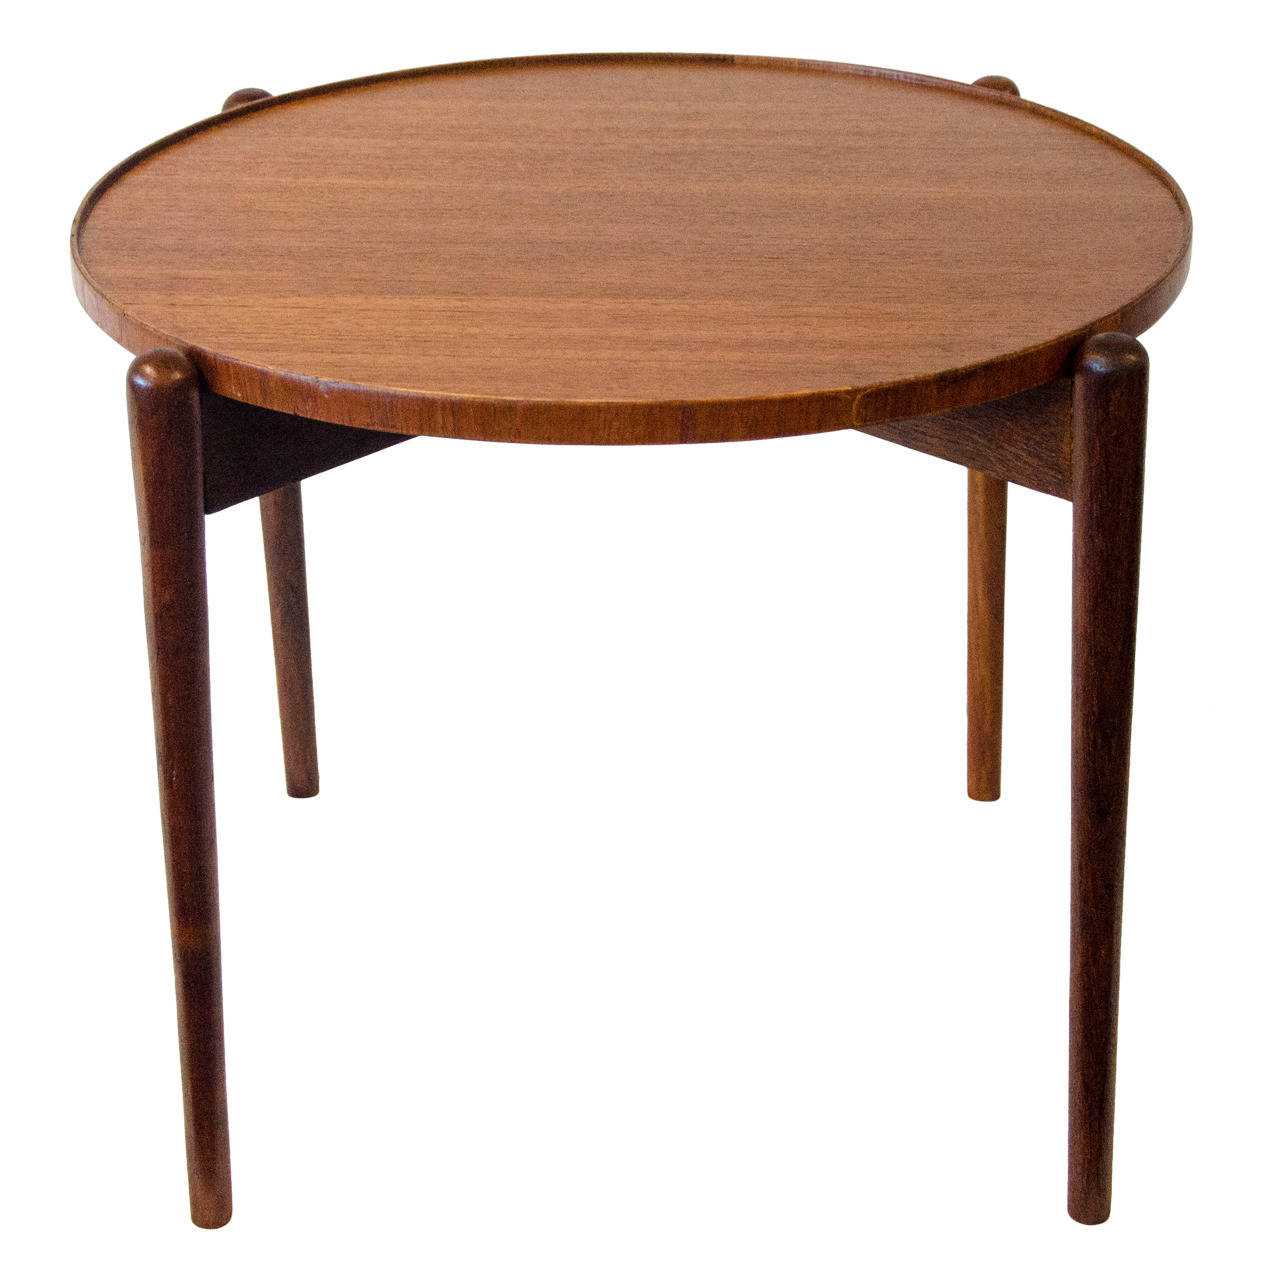 jules small accent table crate and barrel pedestal round teak bedside cloths simple coffee plans door floor plate antique asian lamps mid century lamp interior design ideas for